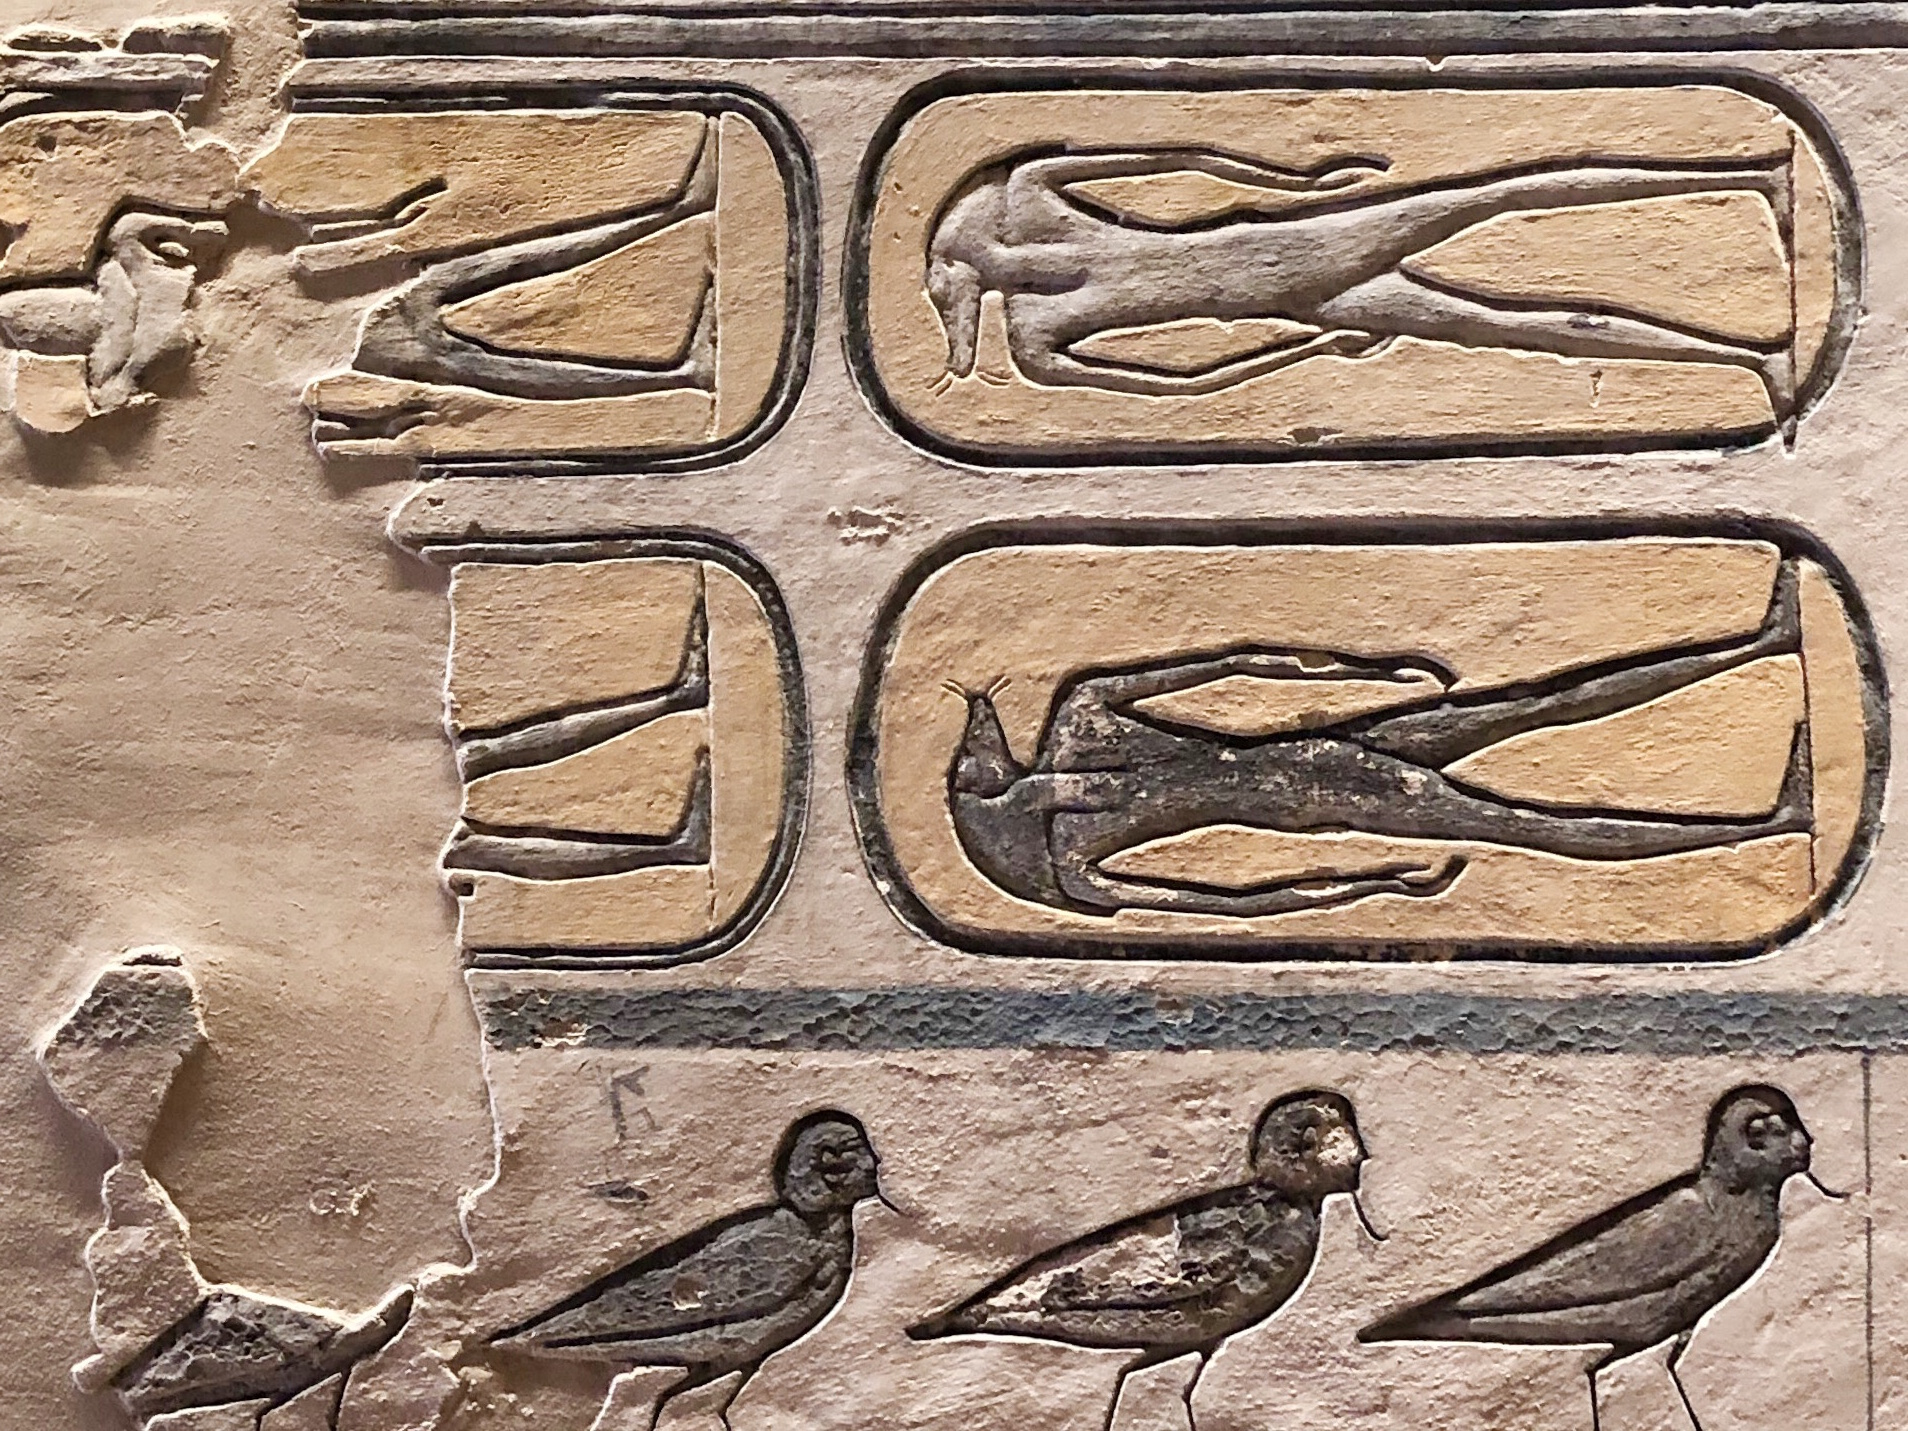 The human-headed birds at the bottom are the ba, the part of the soul that can fly around and protect family members after death